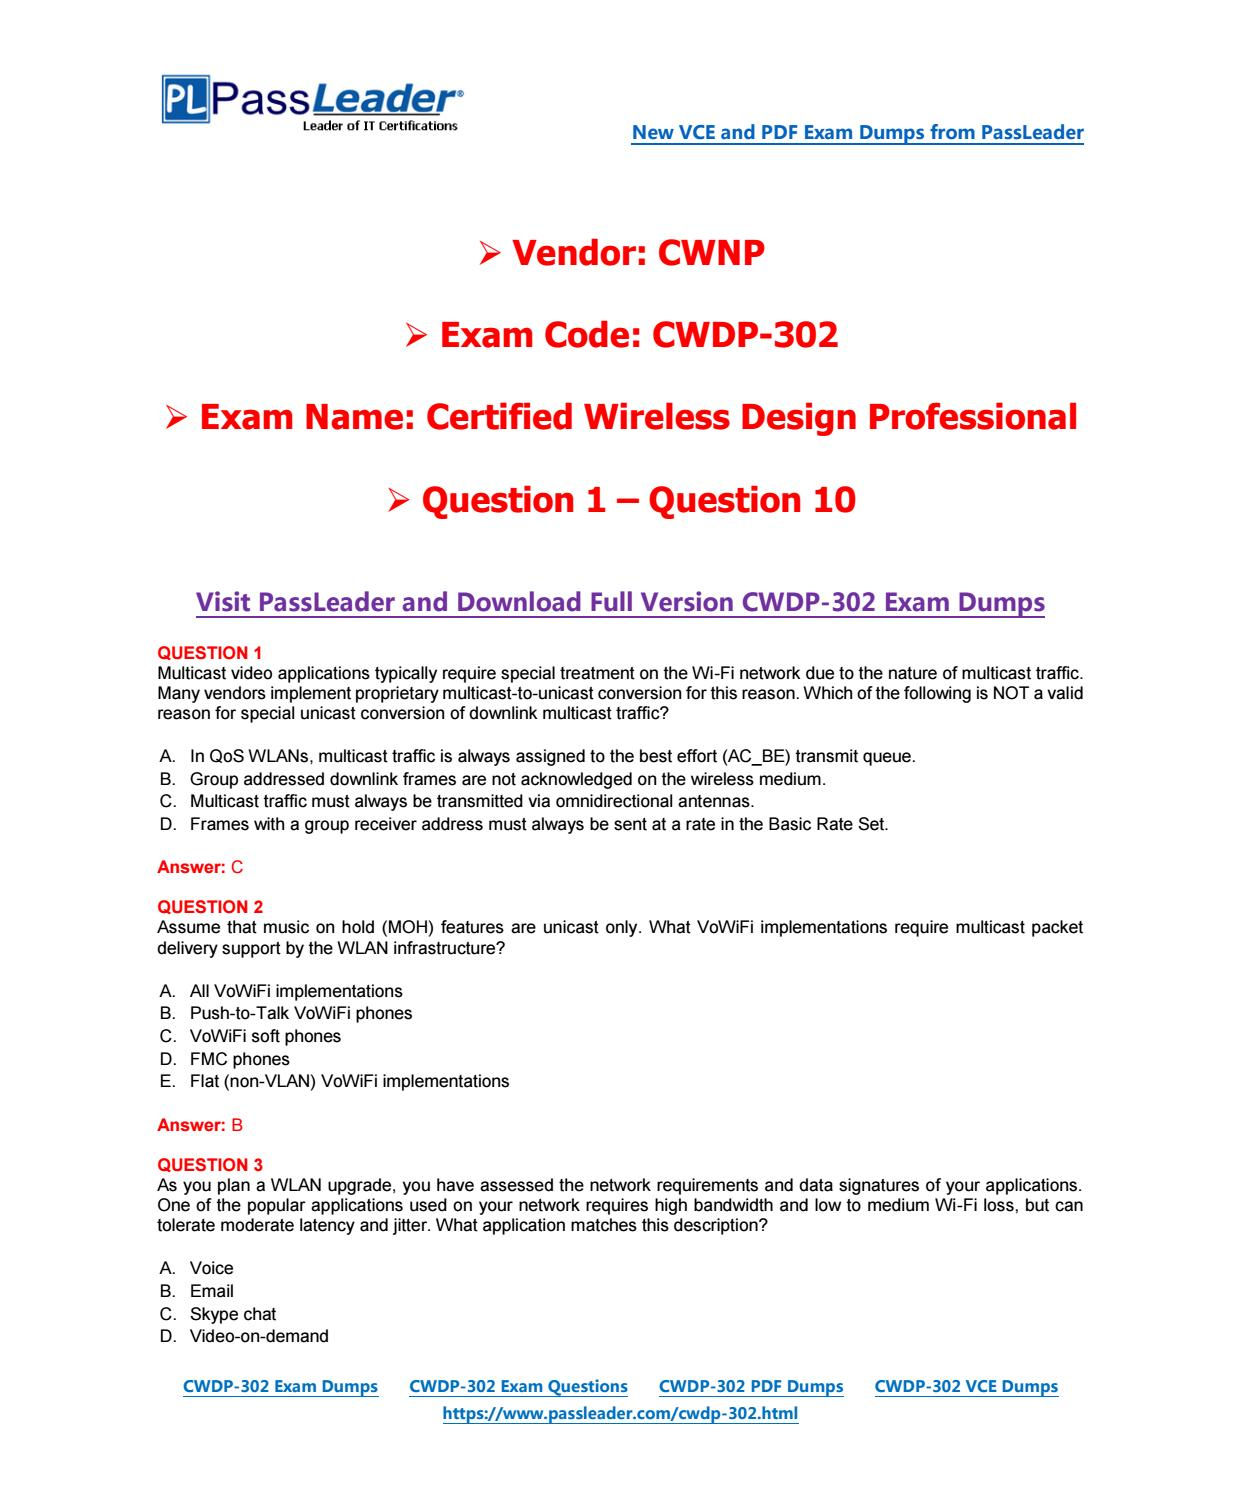 2018 New CWNP CWDP-302 Dumps with PDF and VCE (Question 1-Question ...